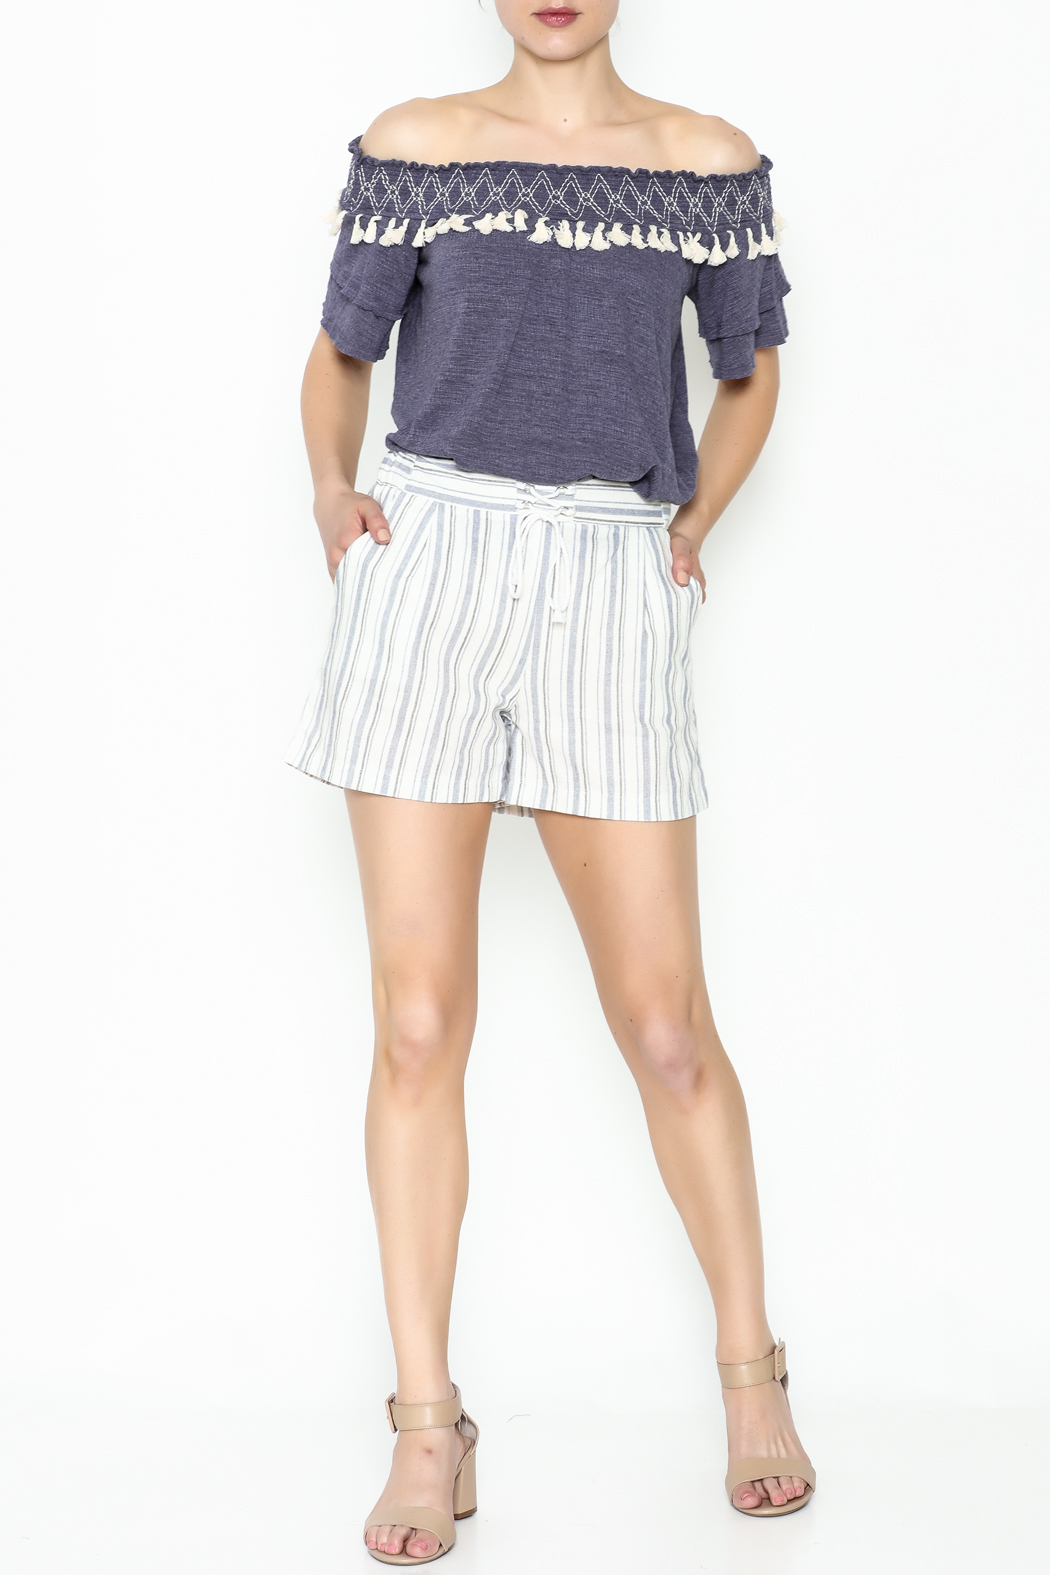 Potter's Pot Striped Shorts - Side Cropped Image